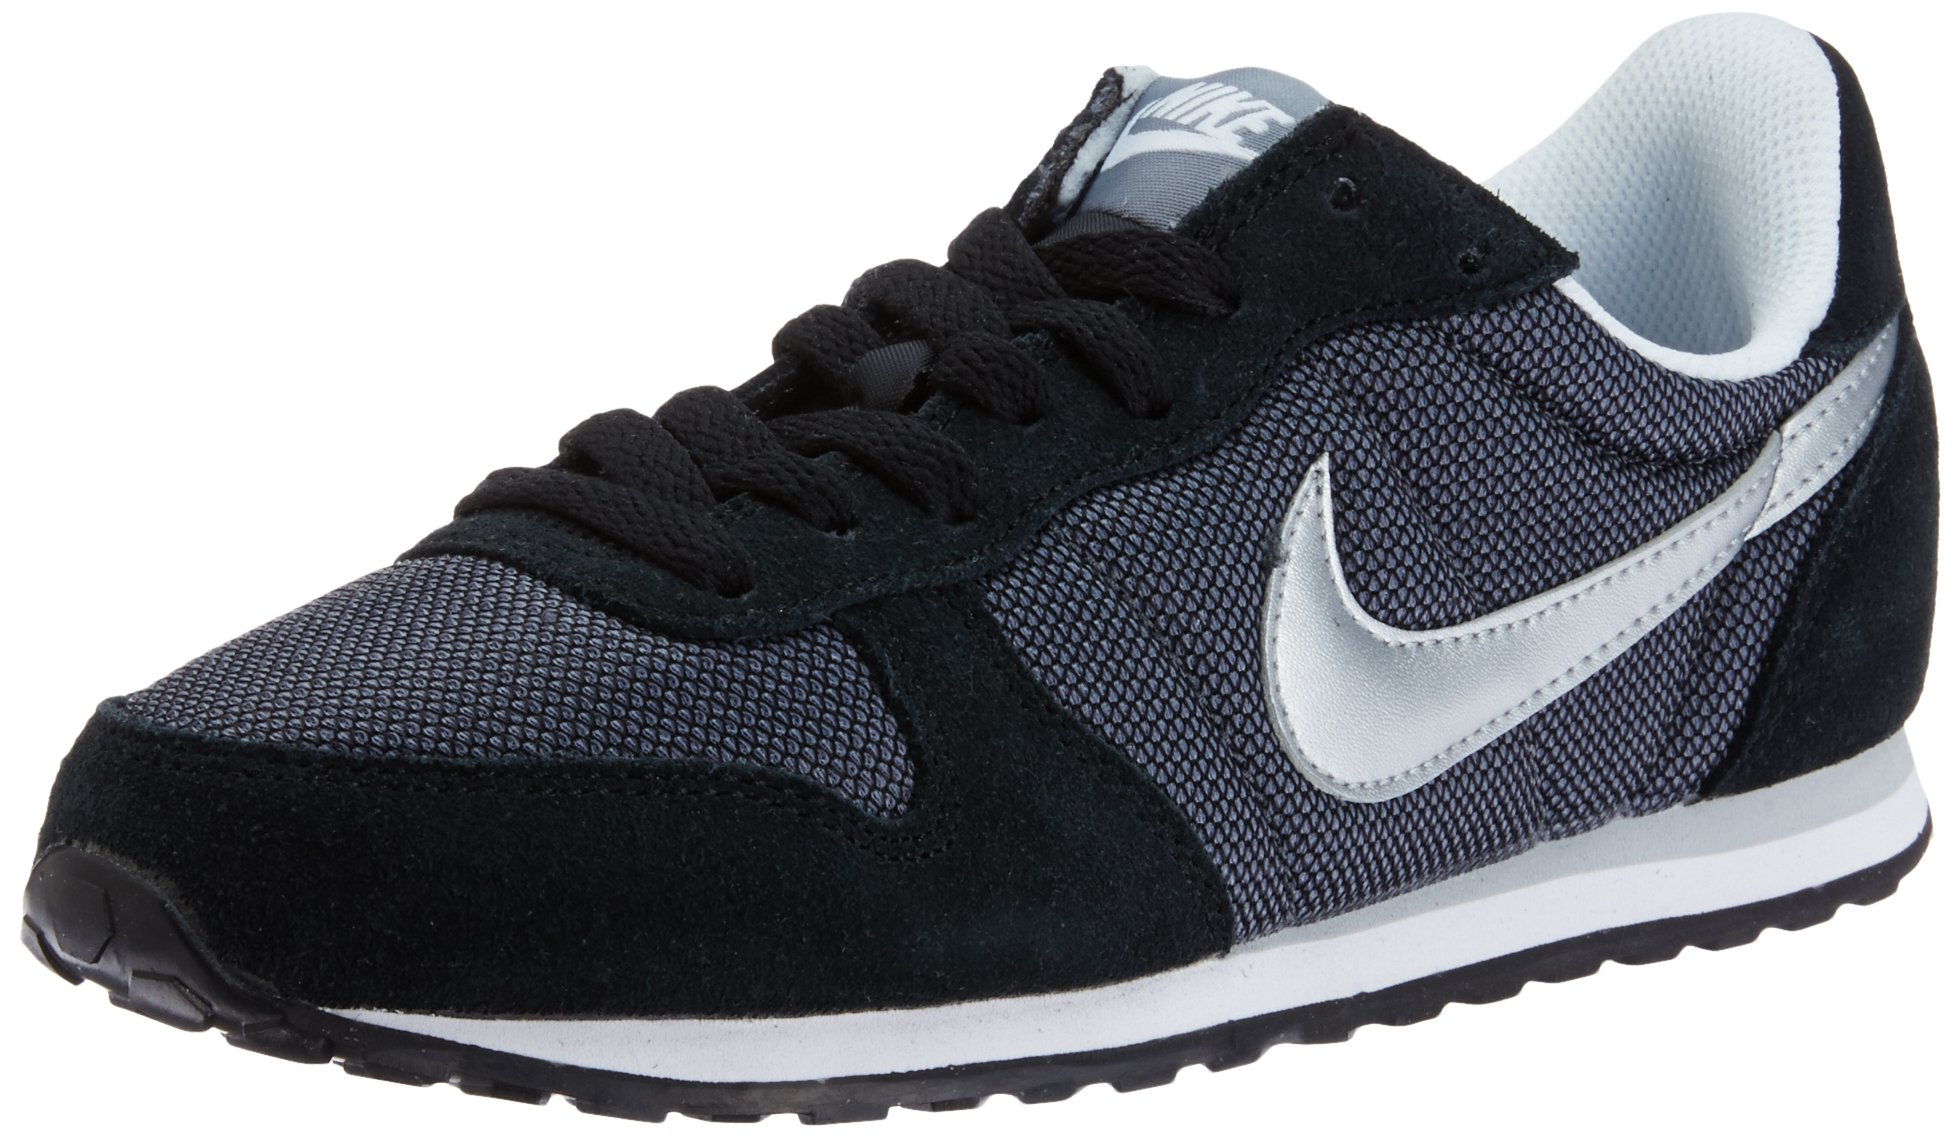 Nike Trainers for Women nike womens genicco trainers 644451